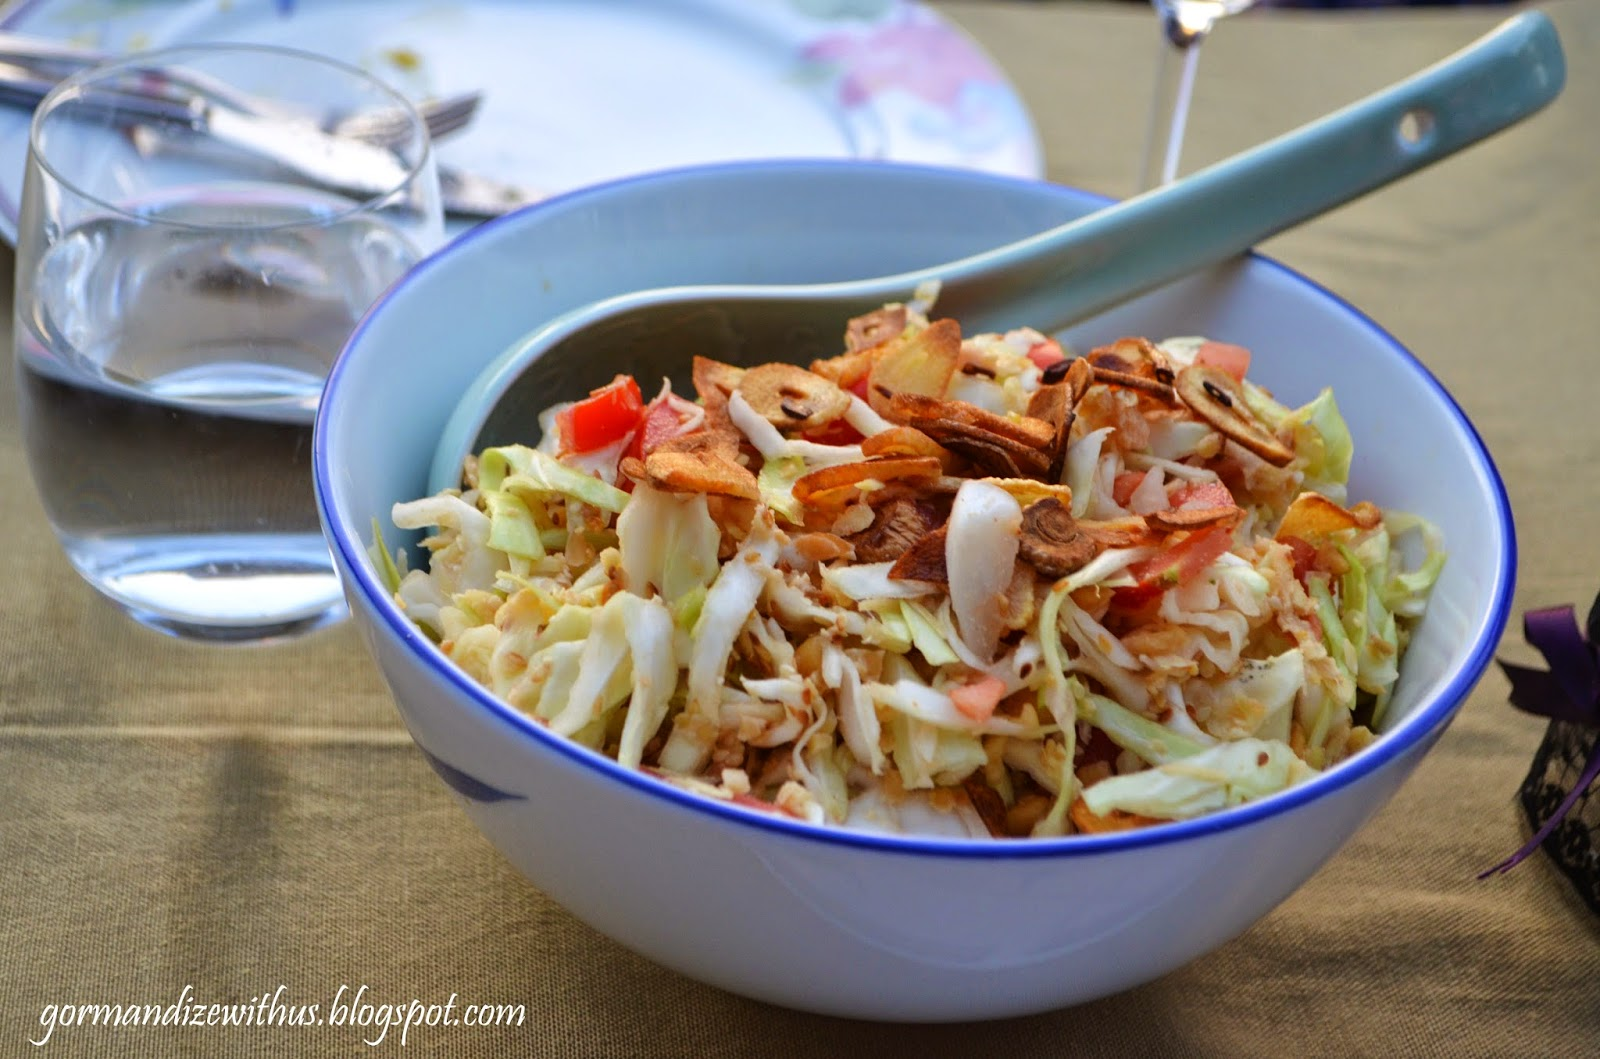 ... to share another great burmese recipe with you for myanmar month i was